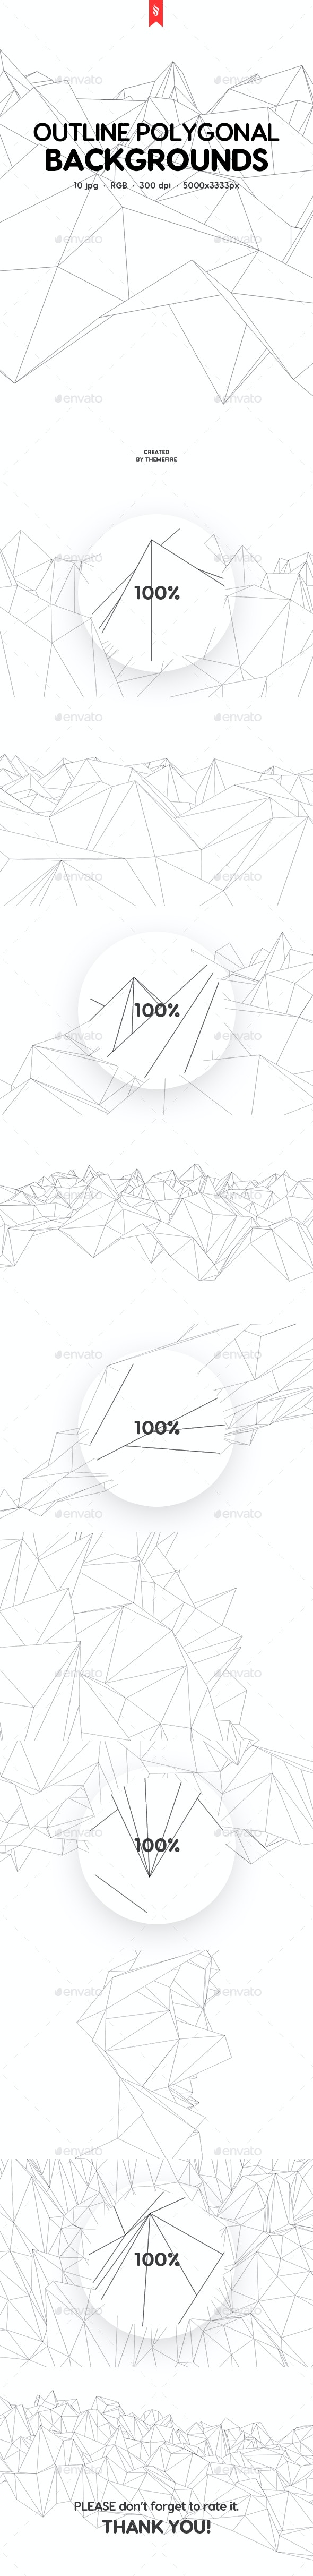 Outline Geometric Polygonal Backgrounds - Abstract Backgrounds